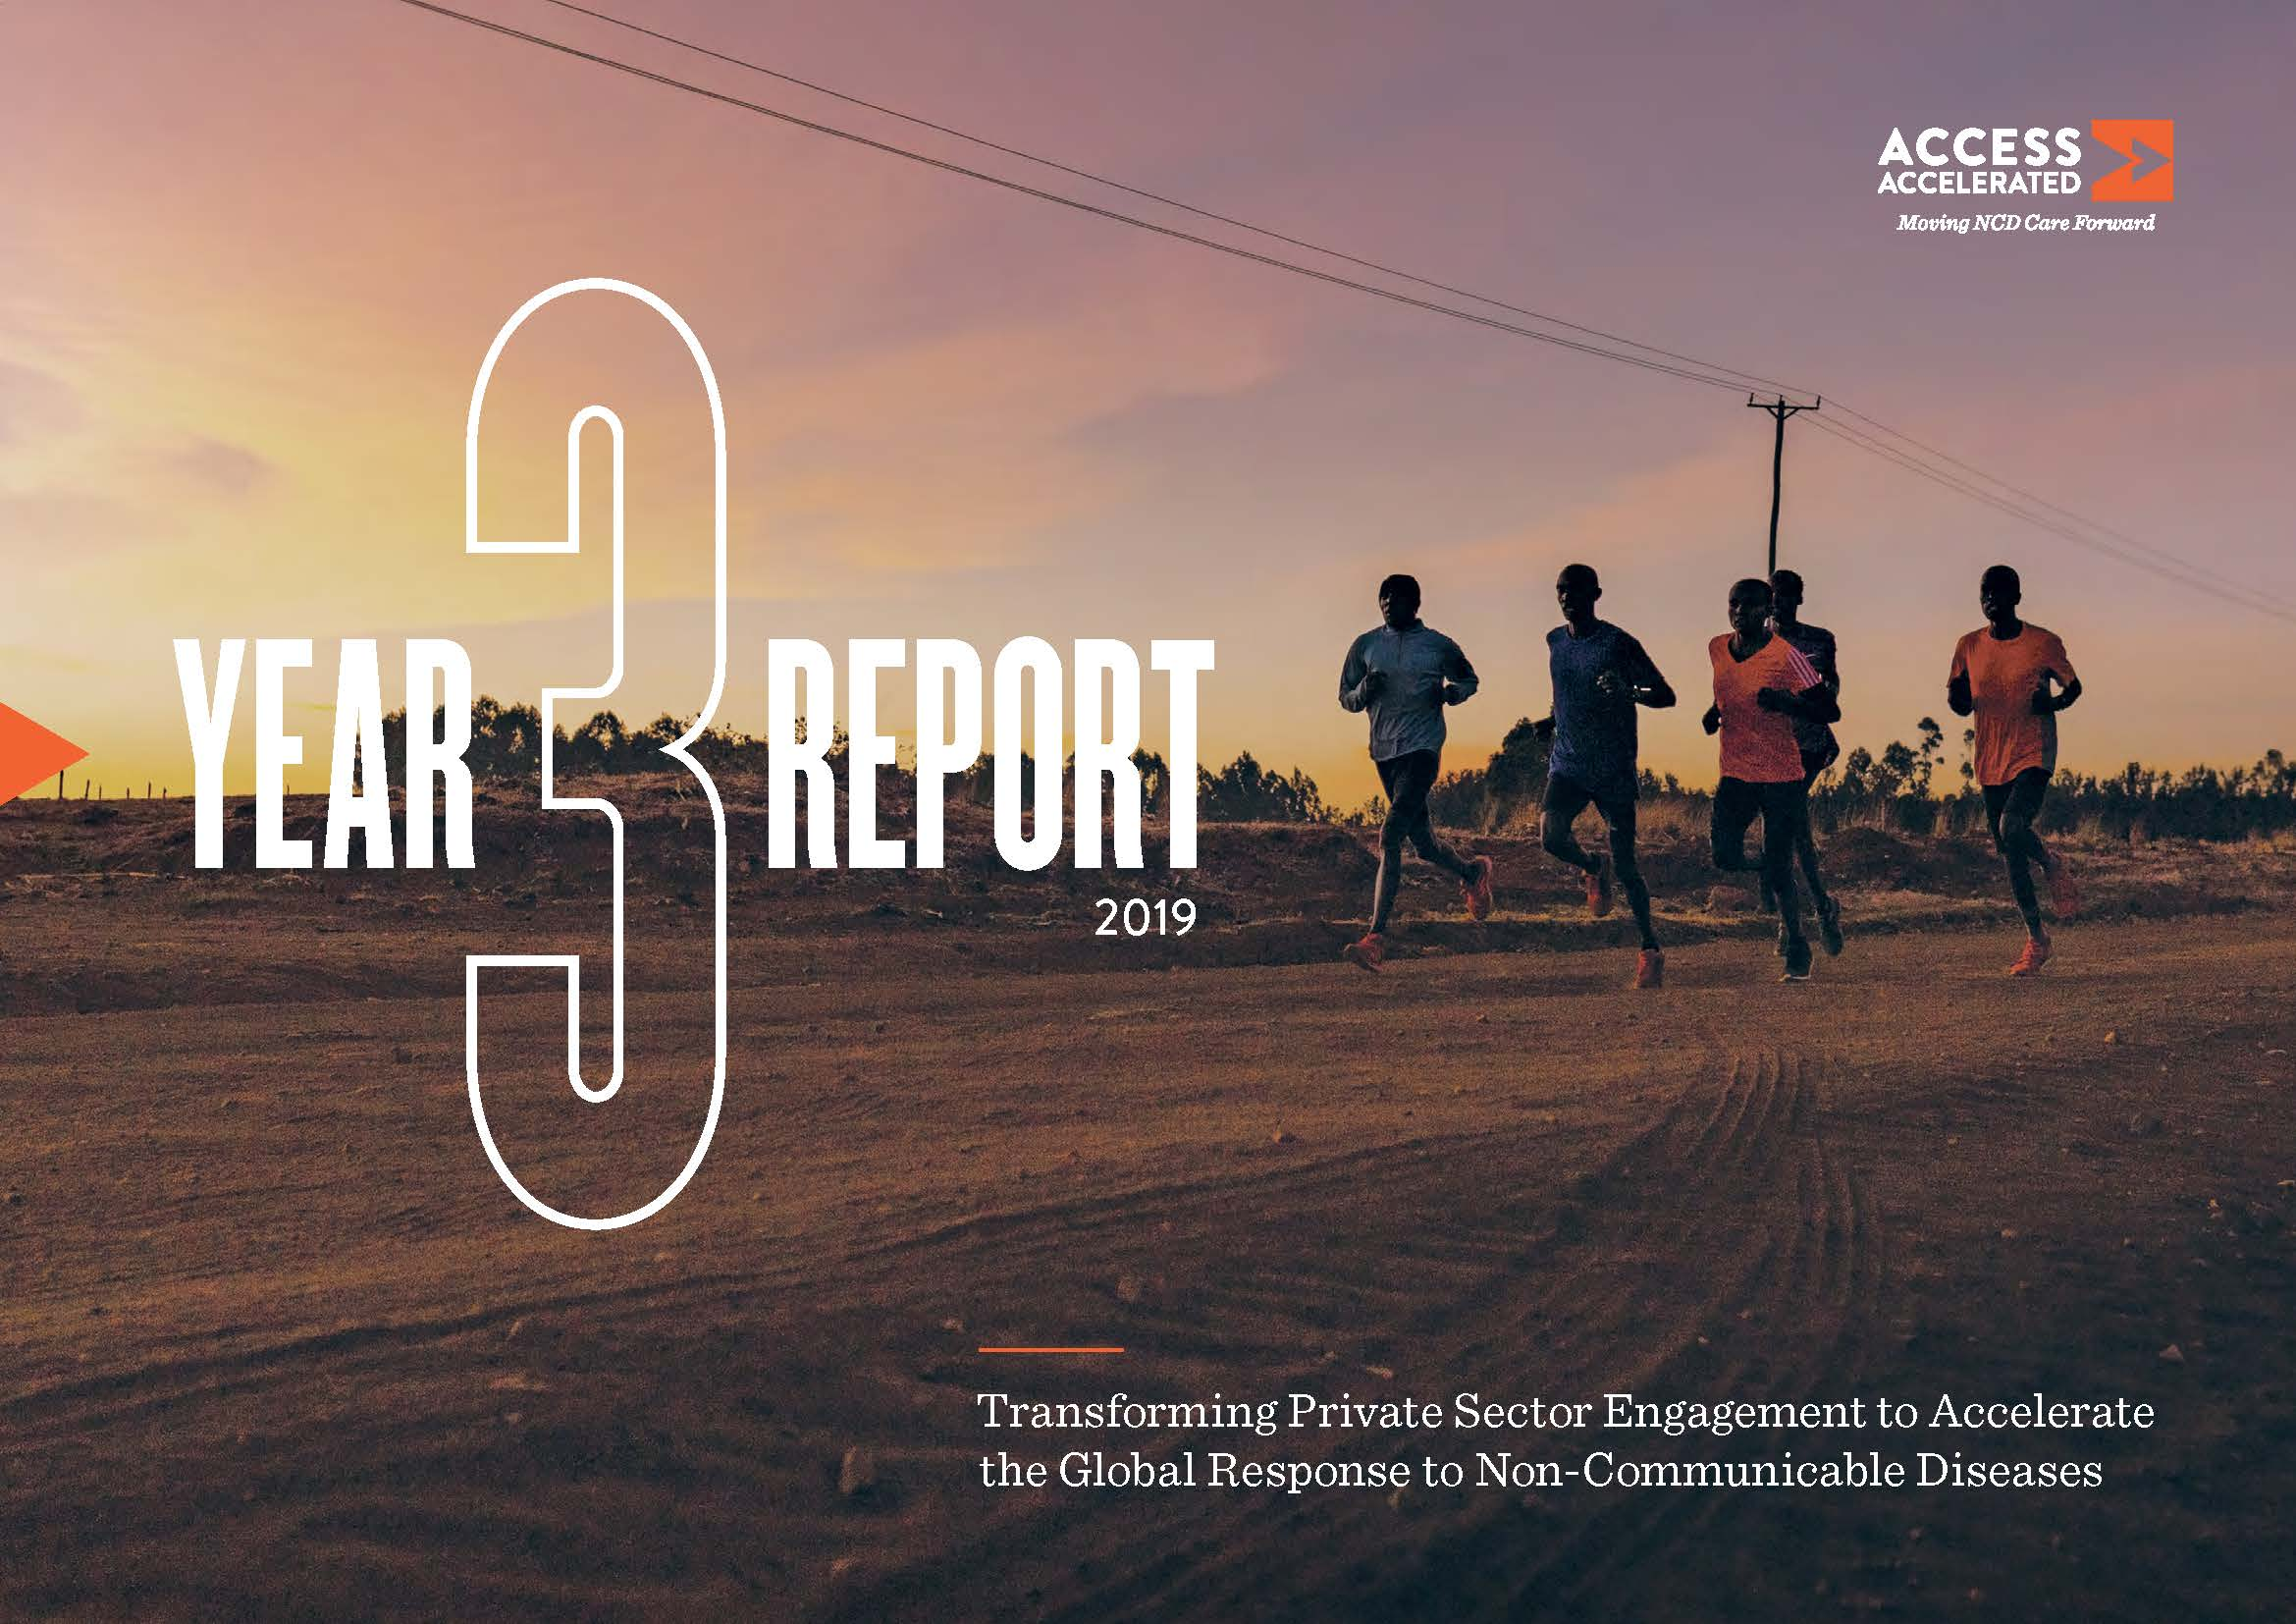 Access Accelerated Year 3 report reflects on global burder of NCDs in 2019